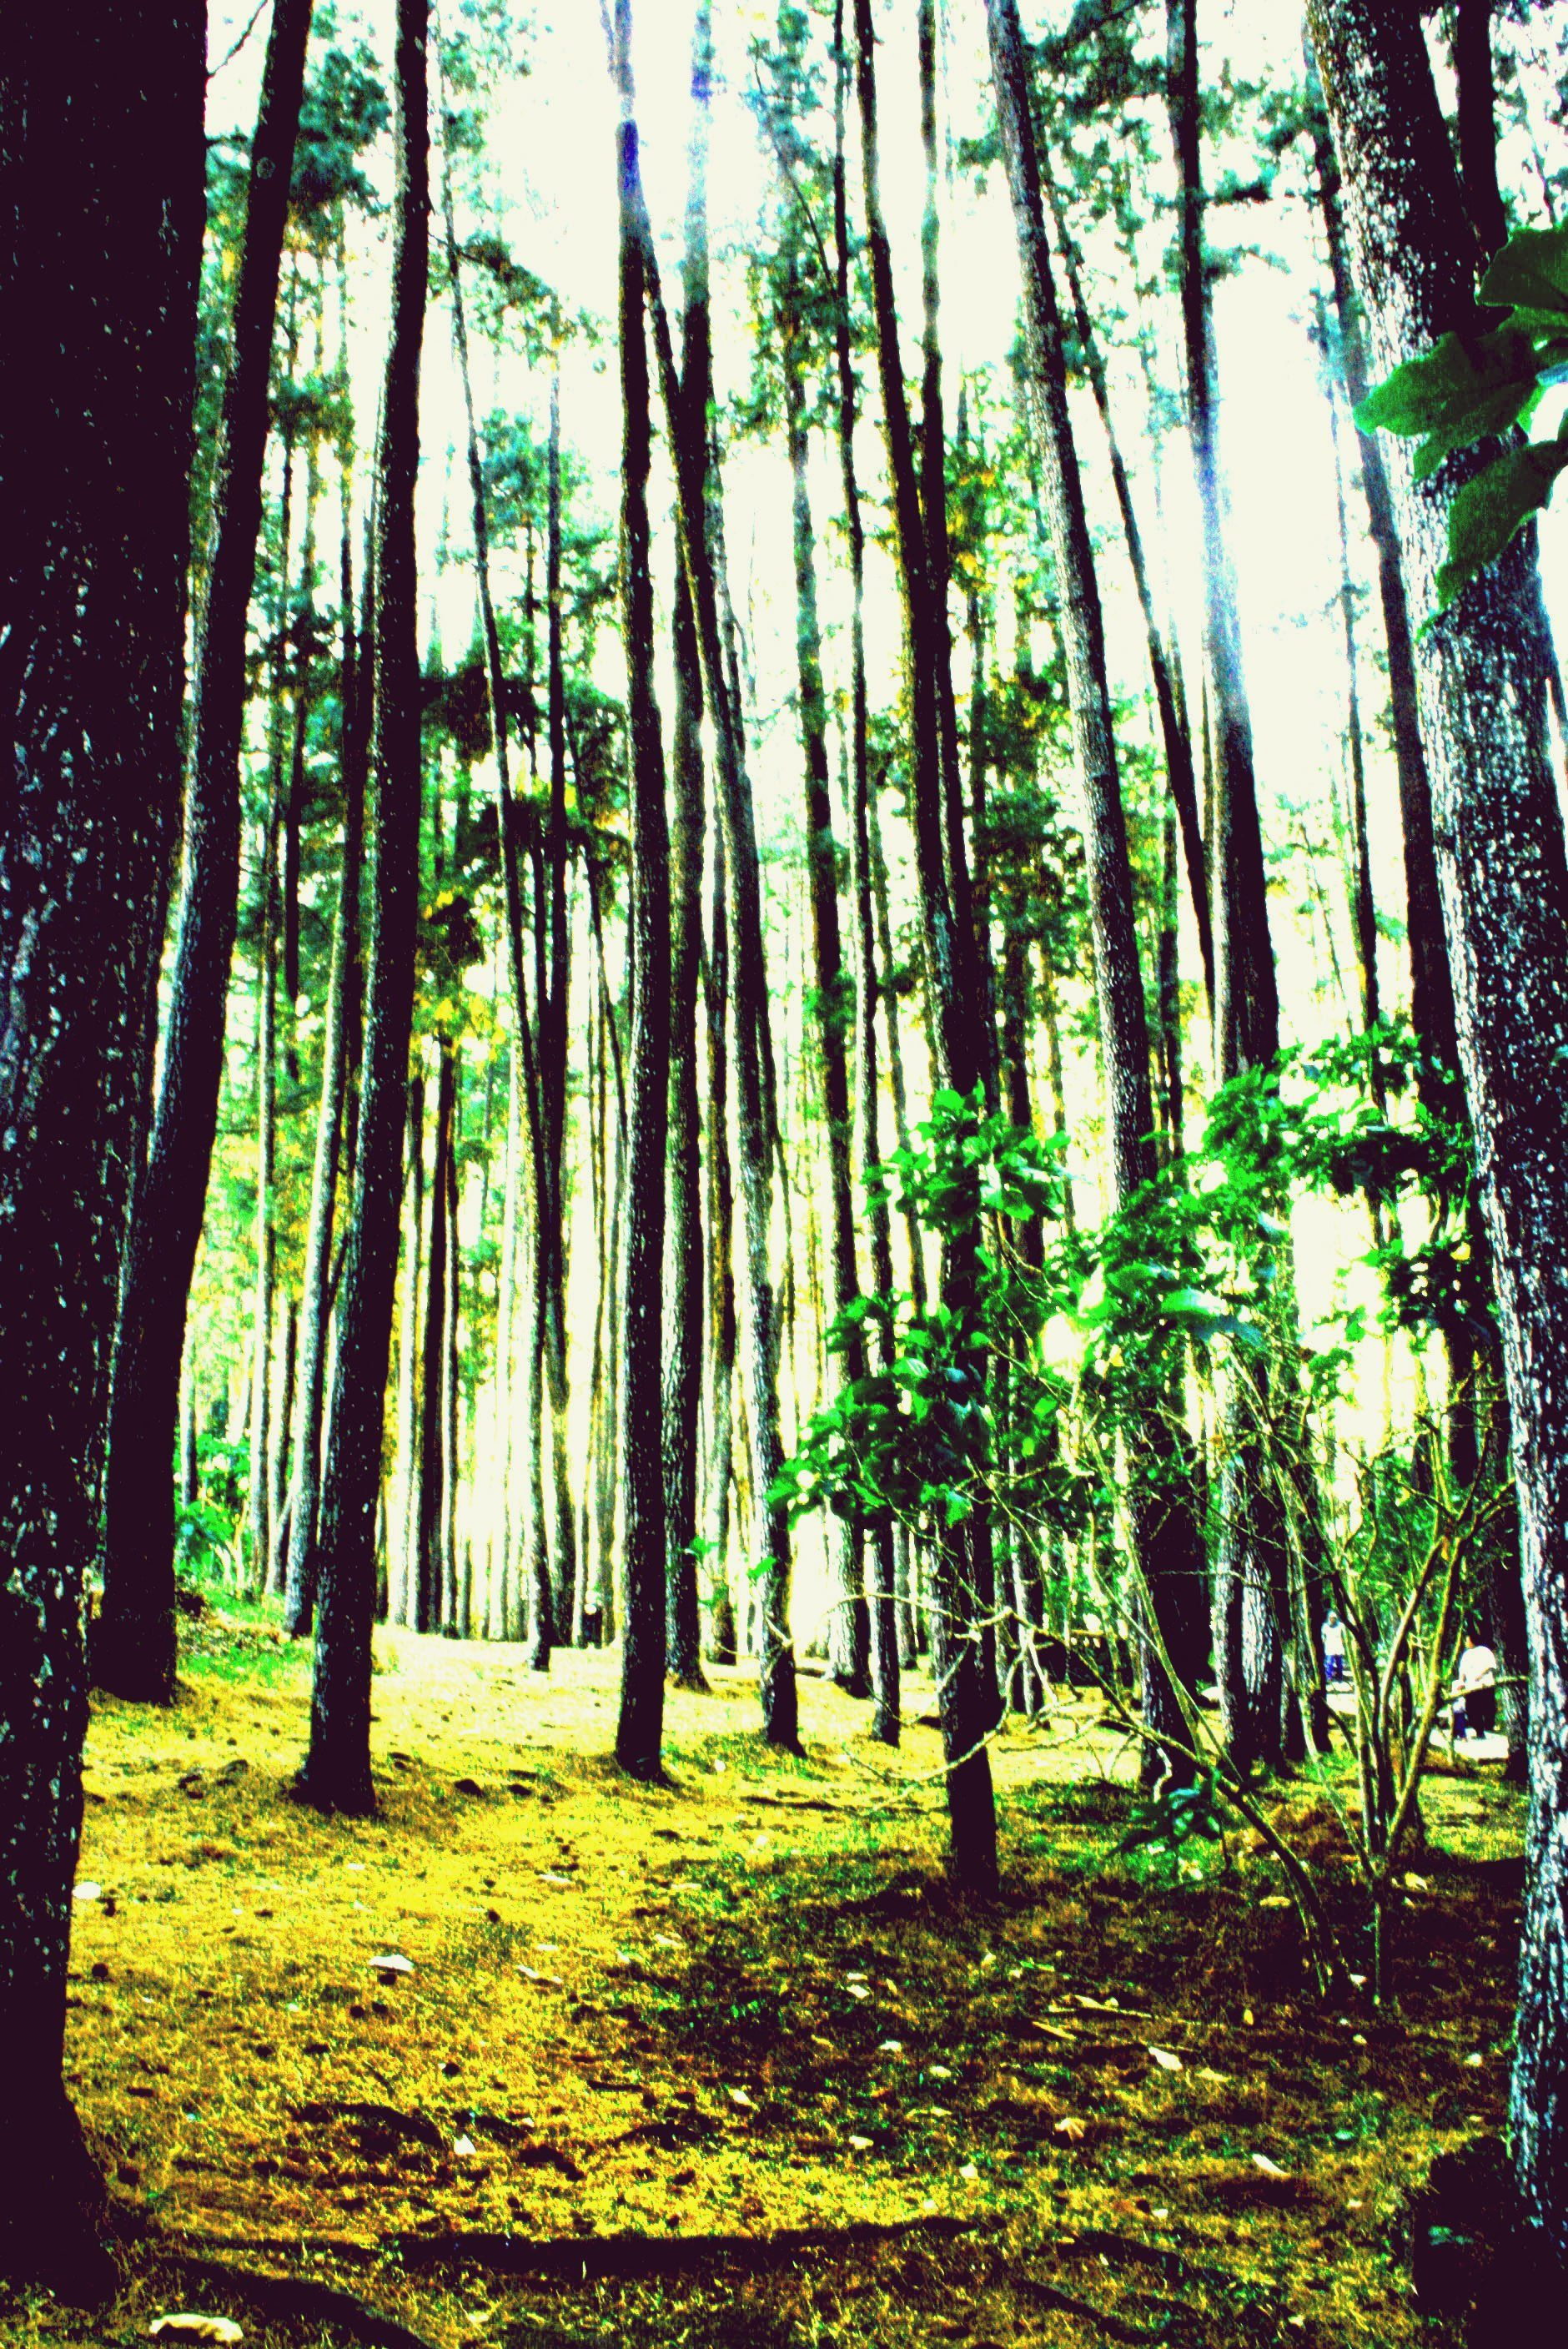 Juanda Forest Park, Bandung Indonesia Paradise on earth